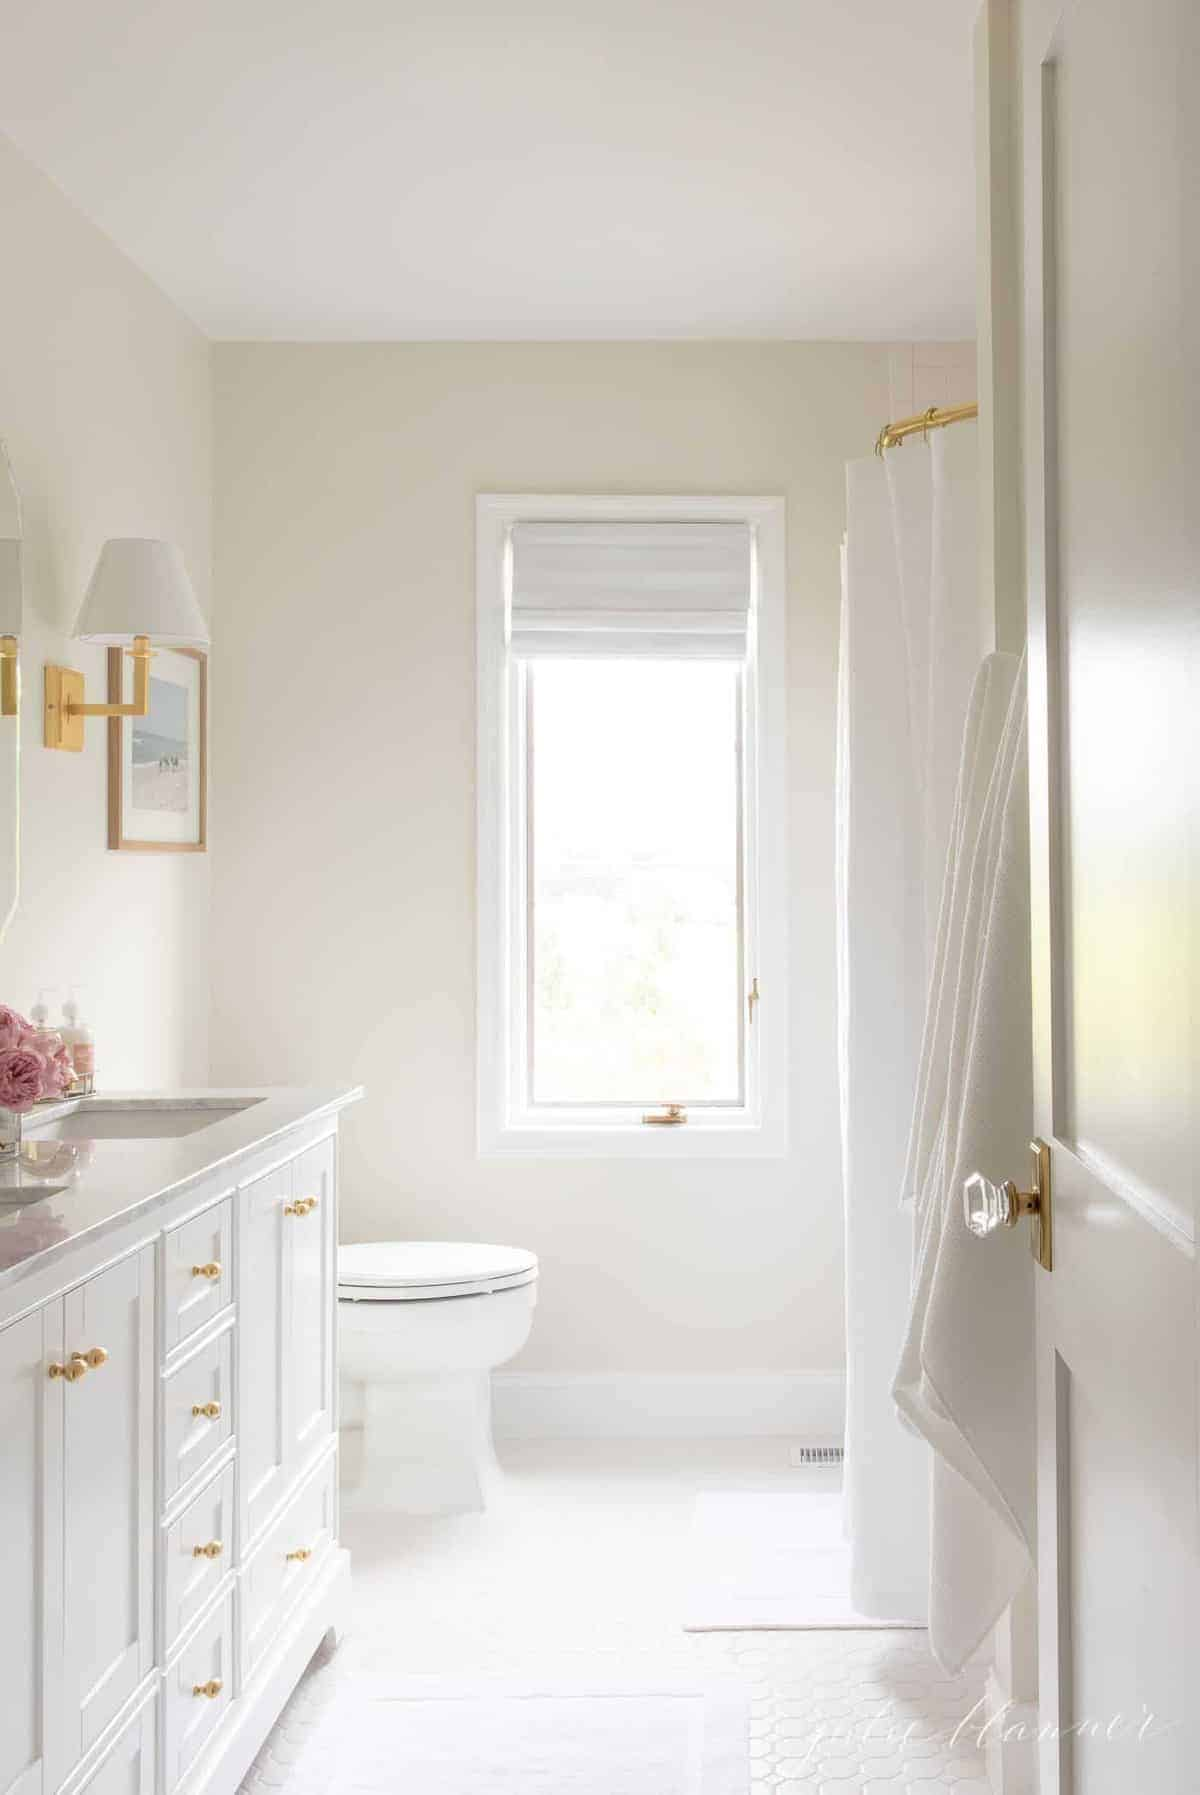 A white bathroom with gold hardware.